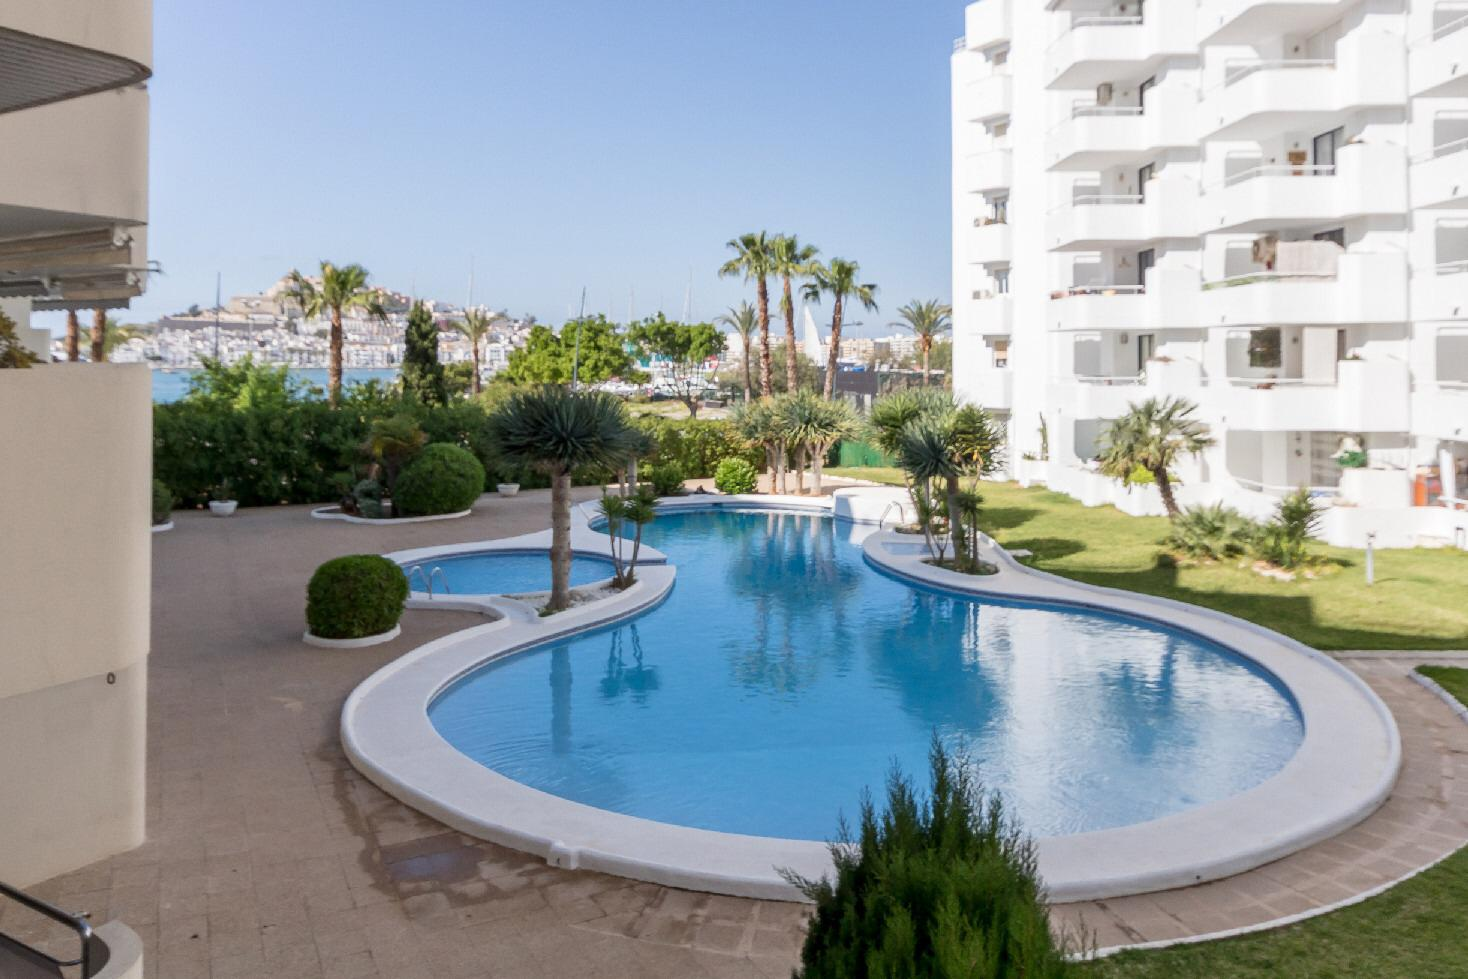 Nice apartment for sale in Marina Botafoch on Ibiza with large pool and nice views